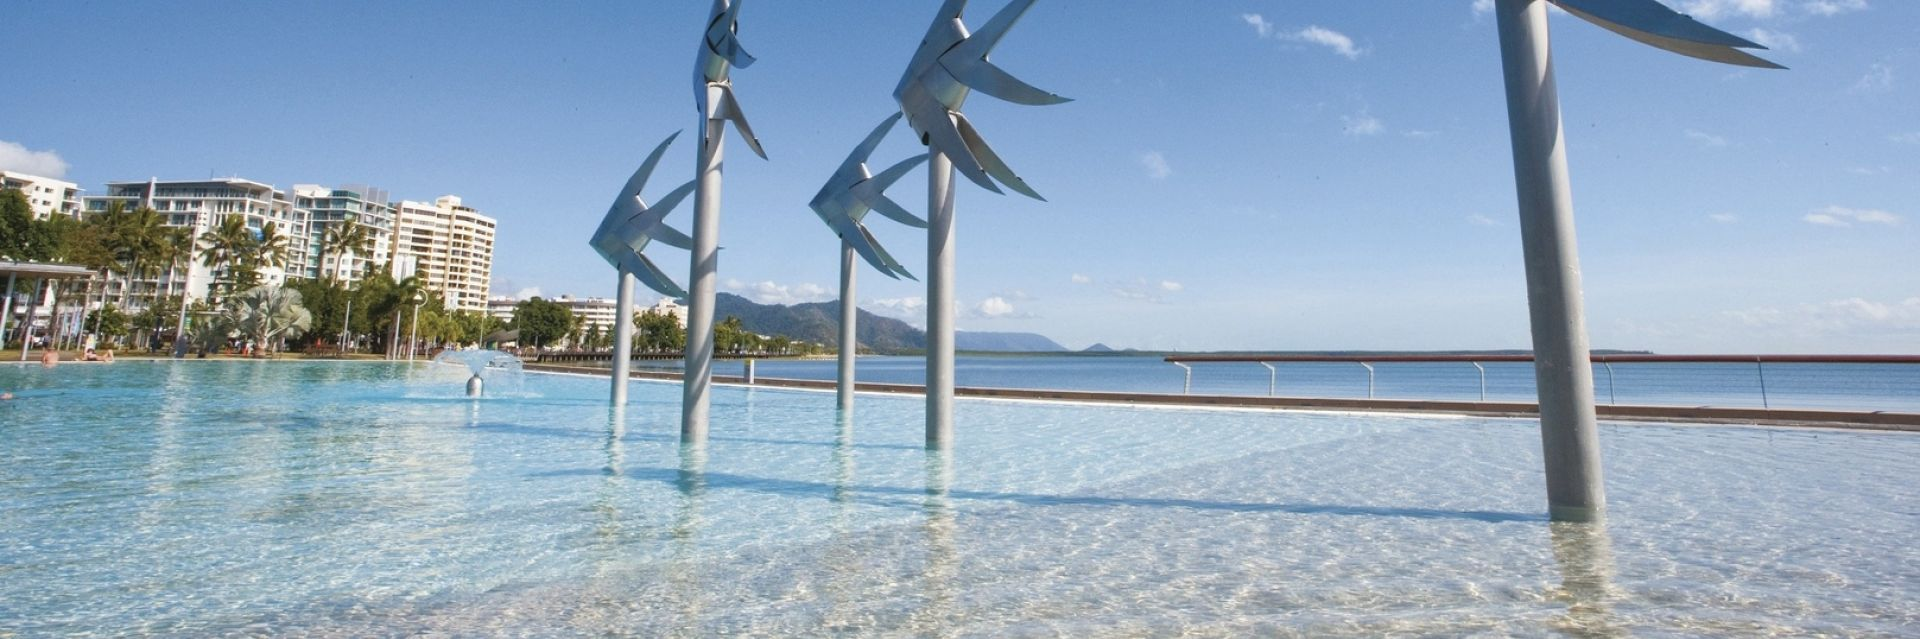 Cairns Esplanade Swimming Lagoon featuring the famous fish sculptures. Photo credit: Tourism and Events Queensland.